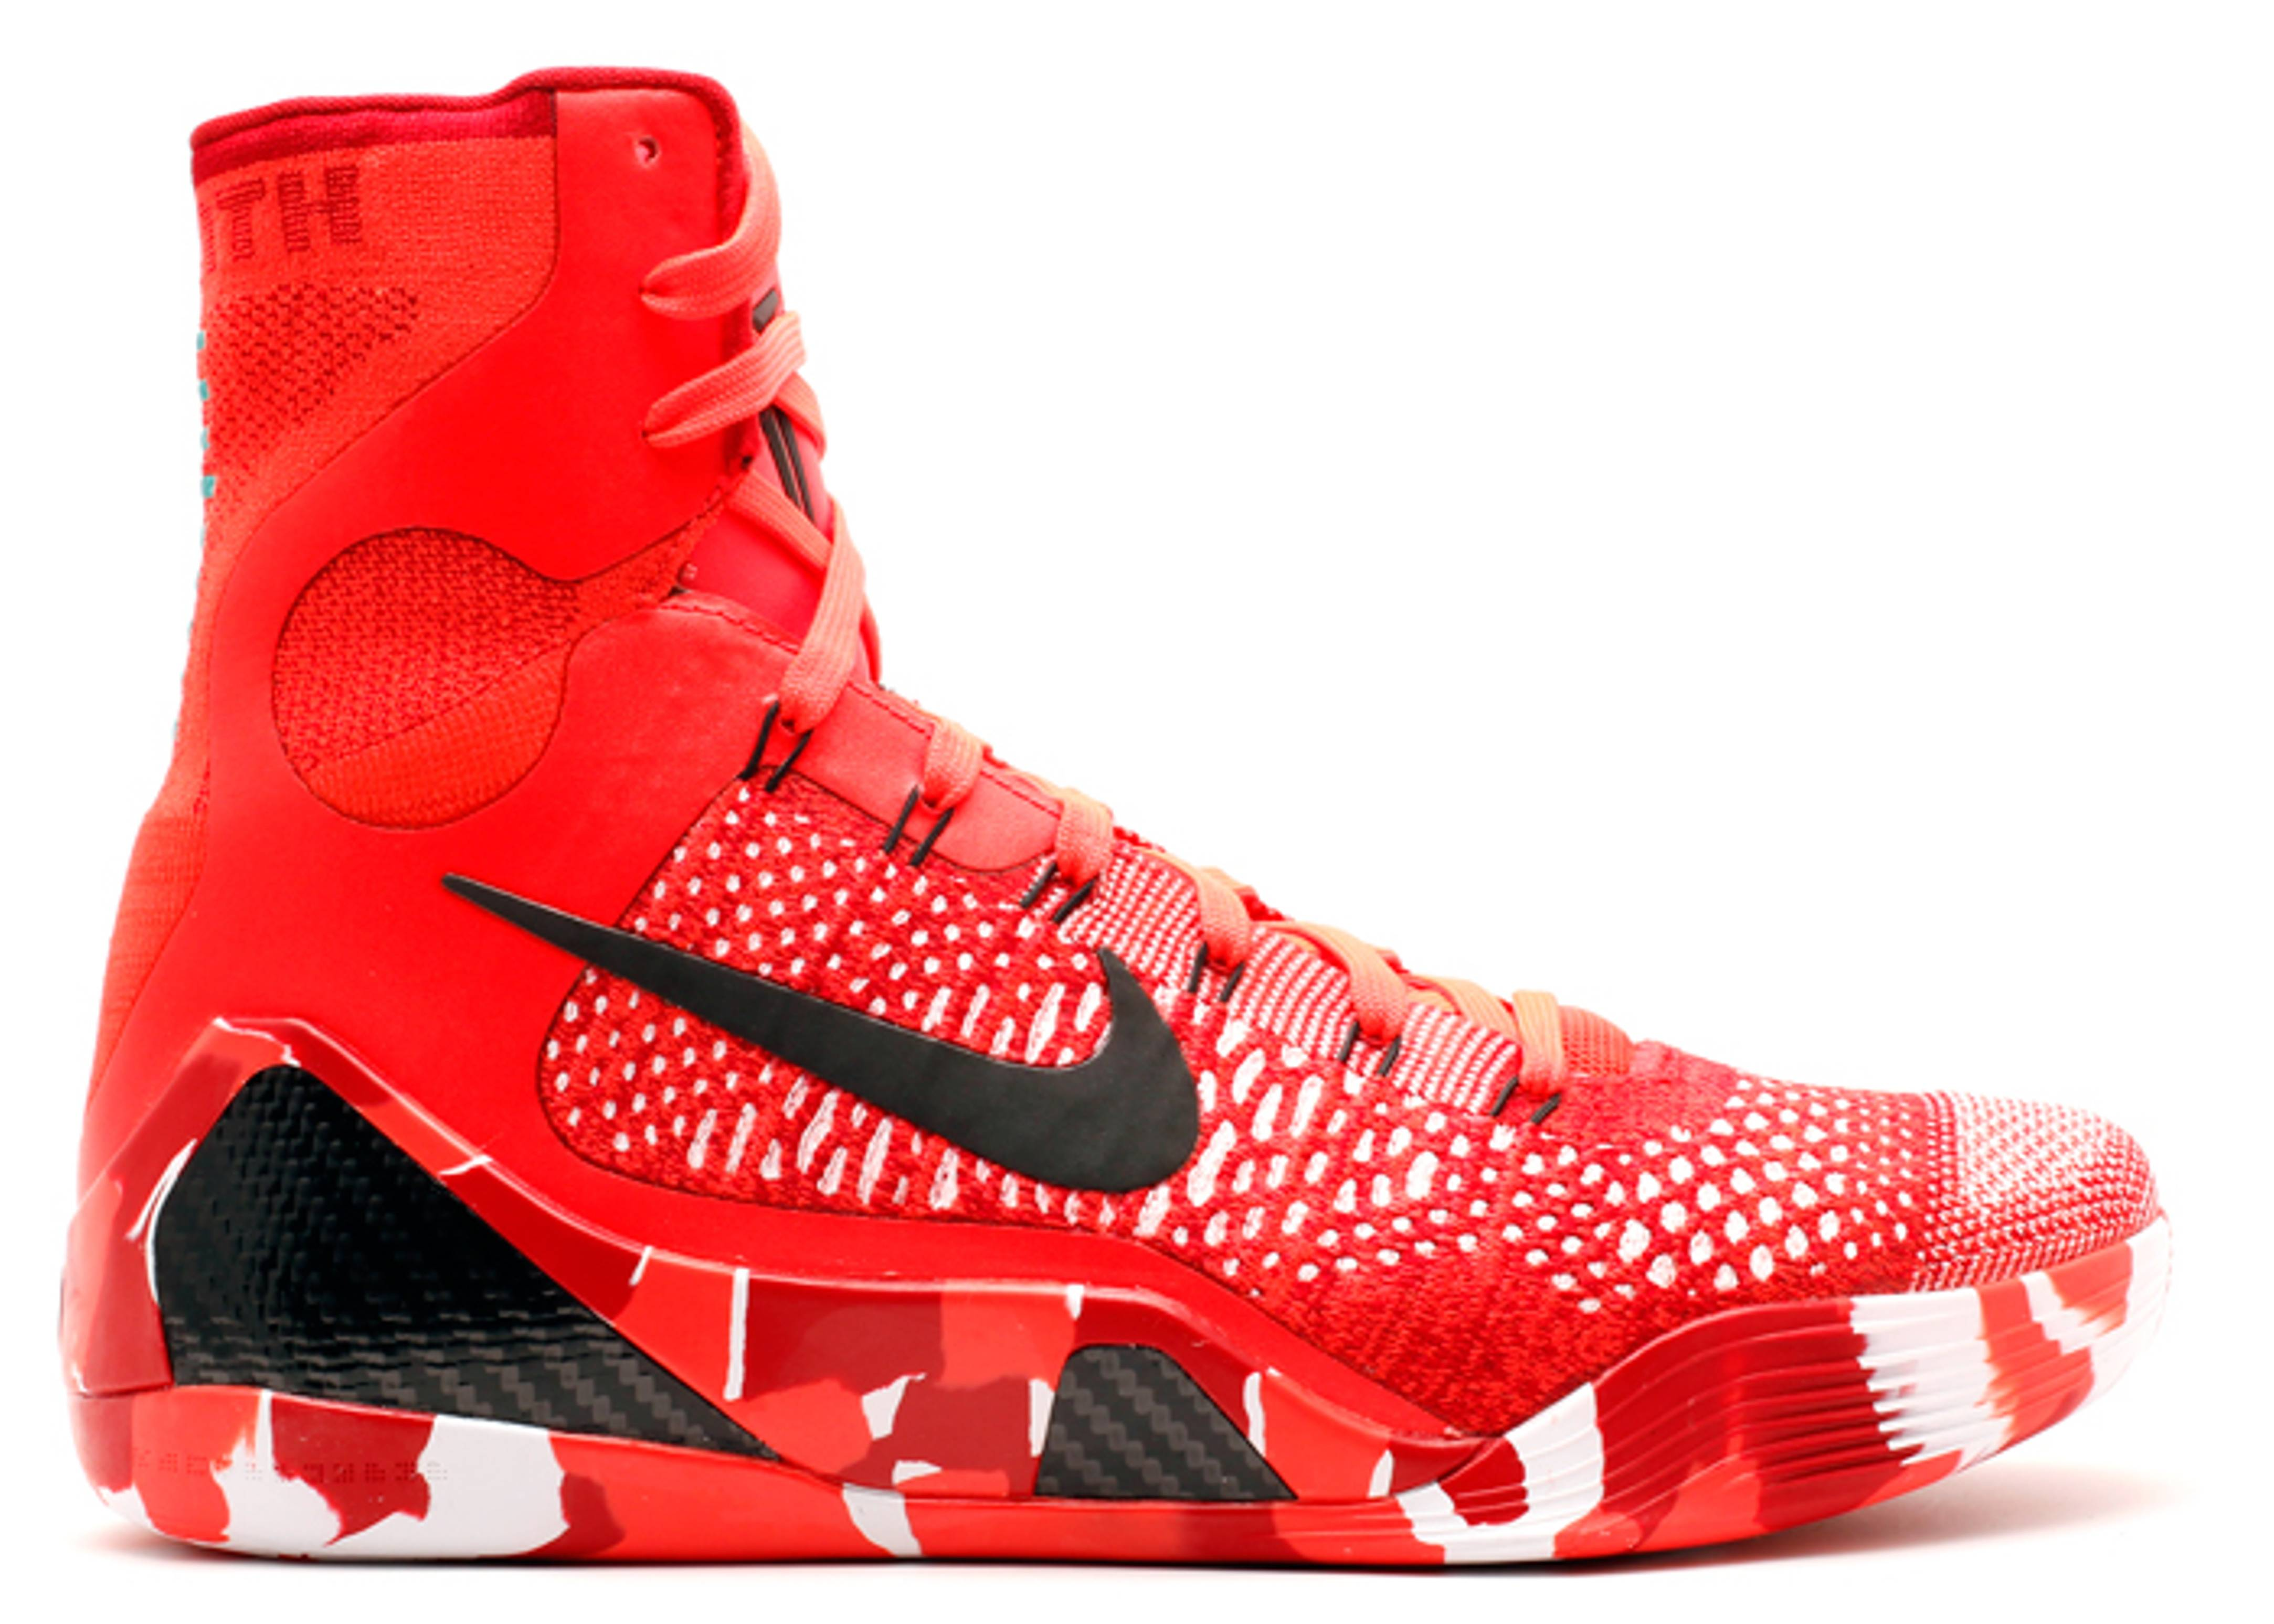 Nike kobe 9 elite perspective 630847 400 pictures to pin on pinterest